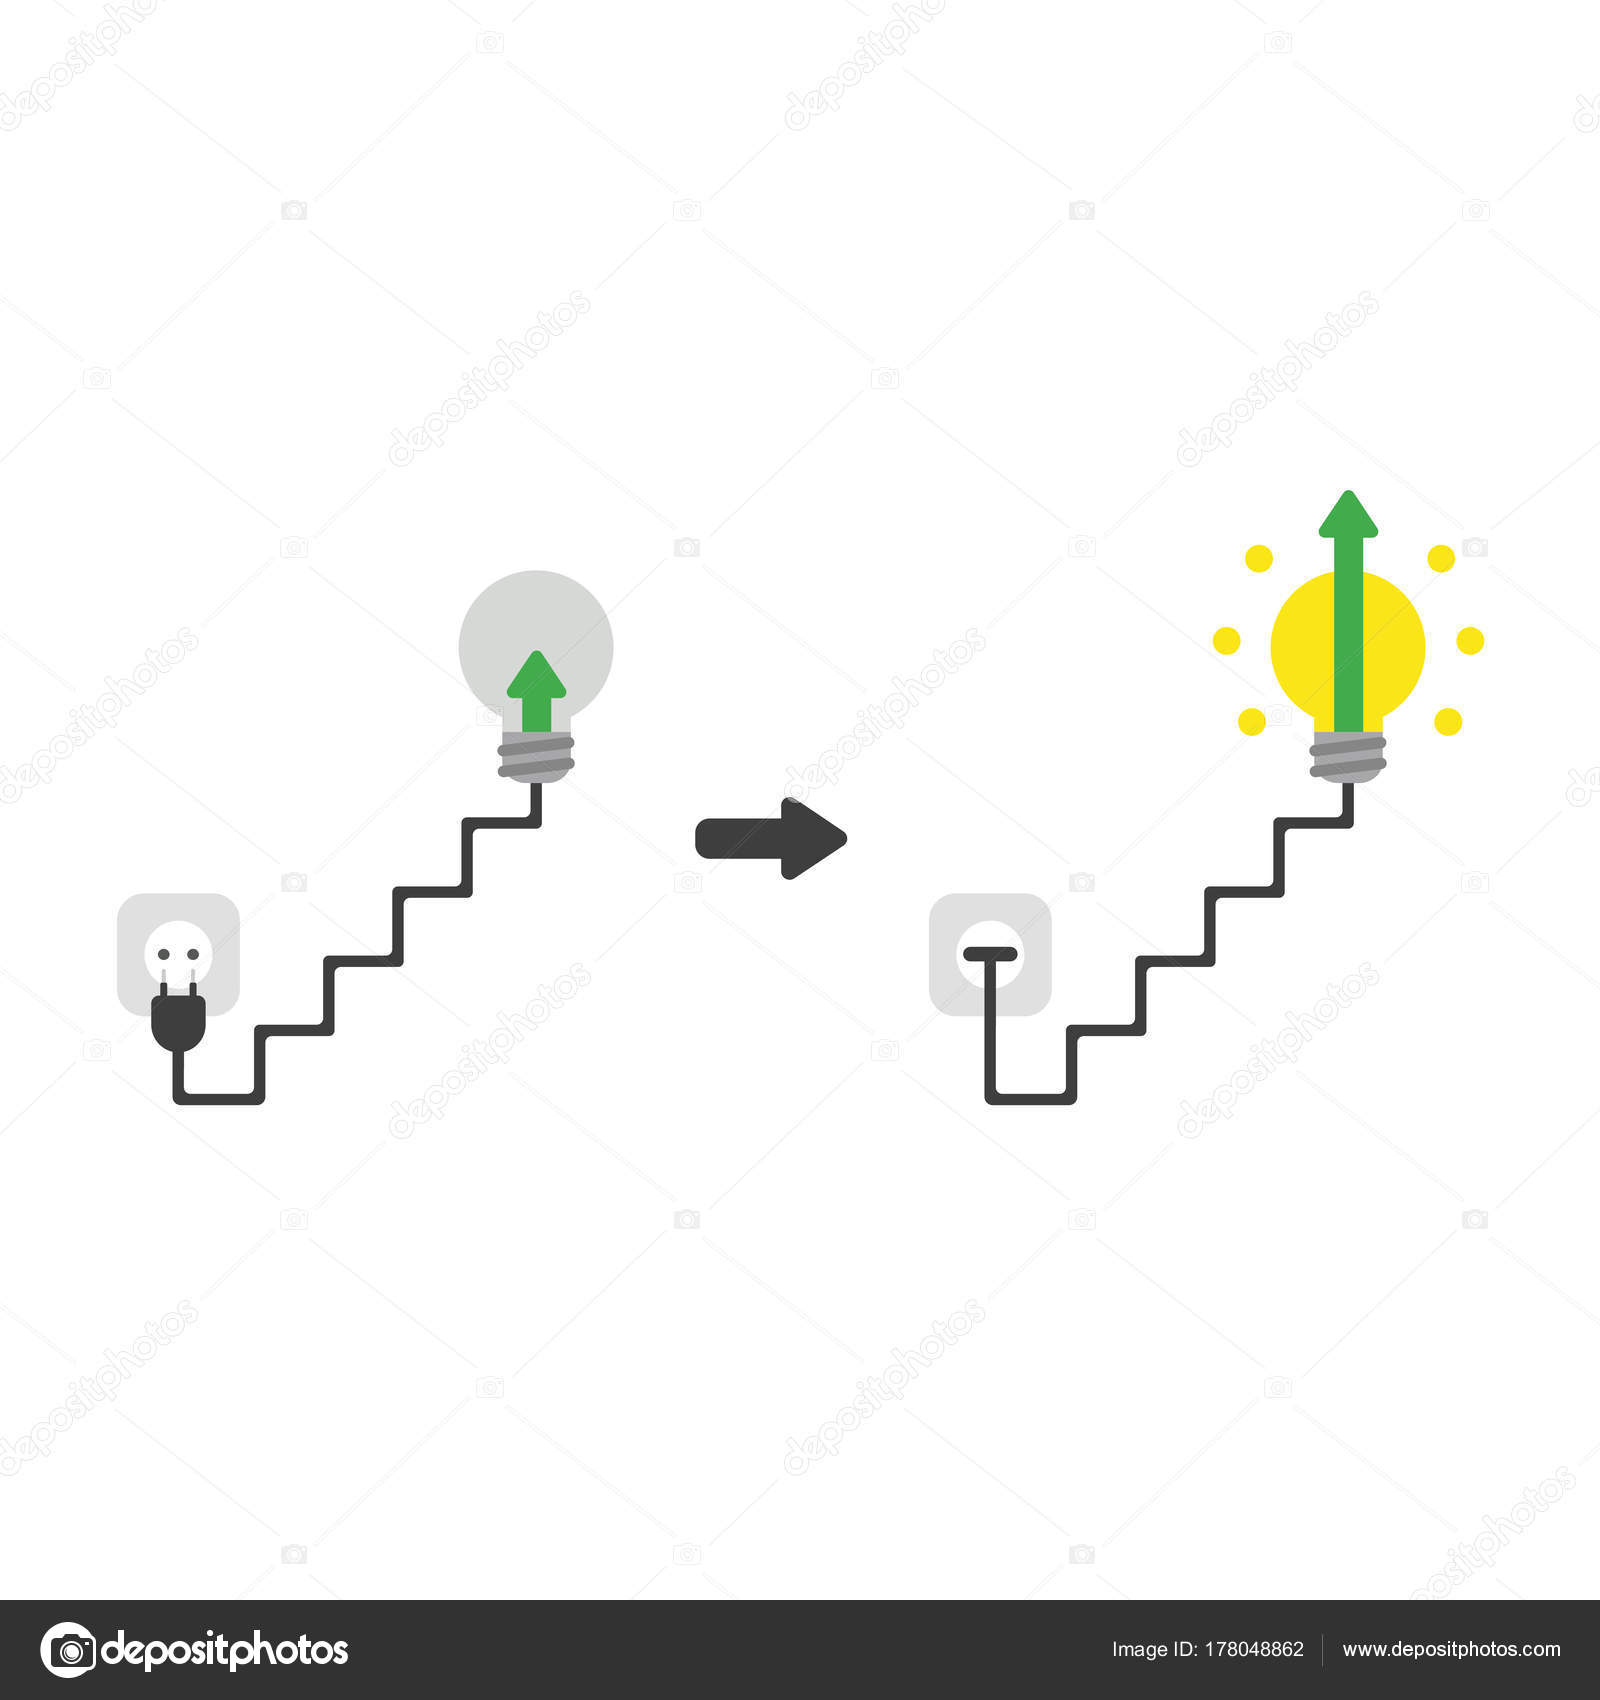 Flat design vector concept of arrow in grey light bulb plugged flat design vector illustration concept of green arrow in grey lightbulb symbol icon with cable plug and outlet and plugged into outlet and light bulb buycottarizona Choice Image